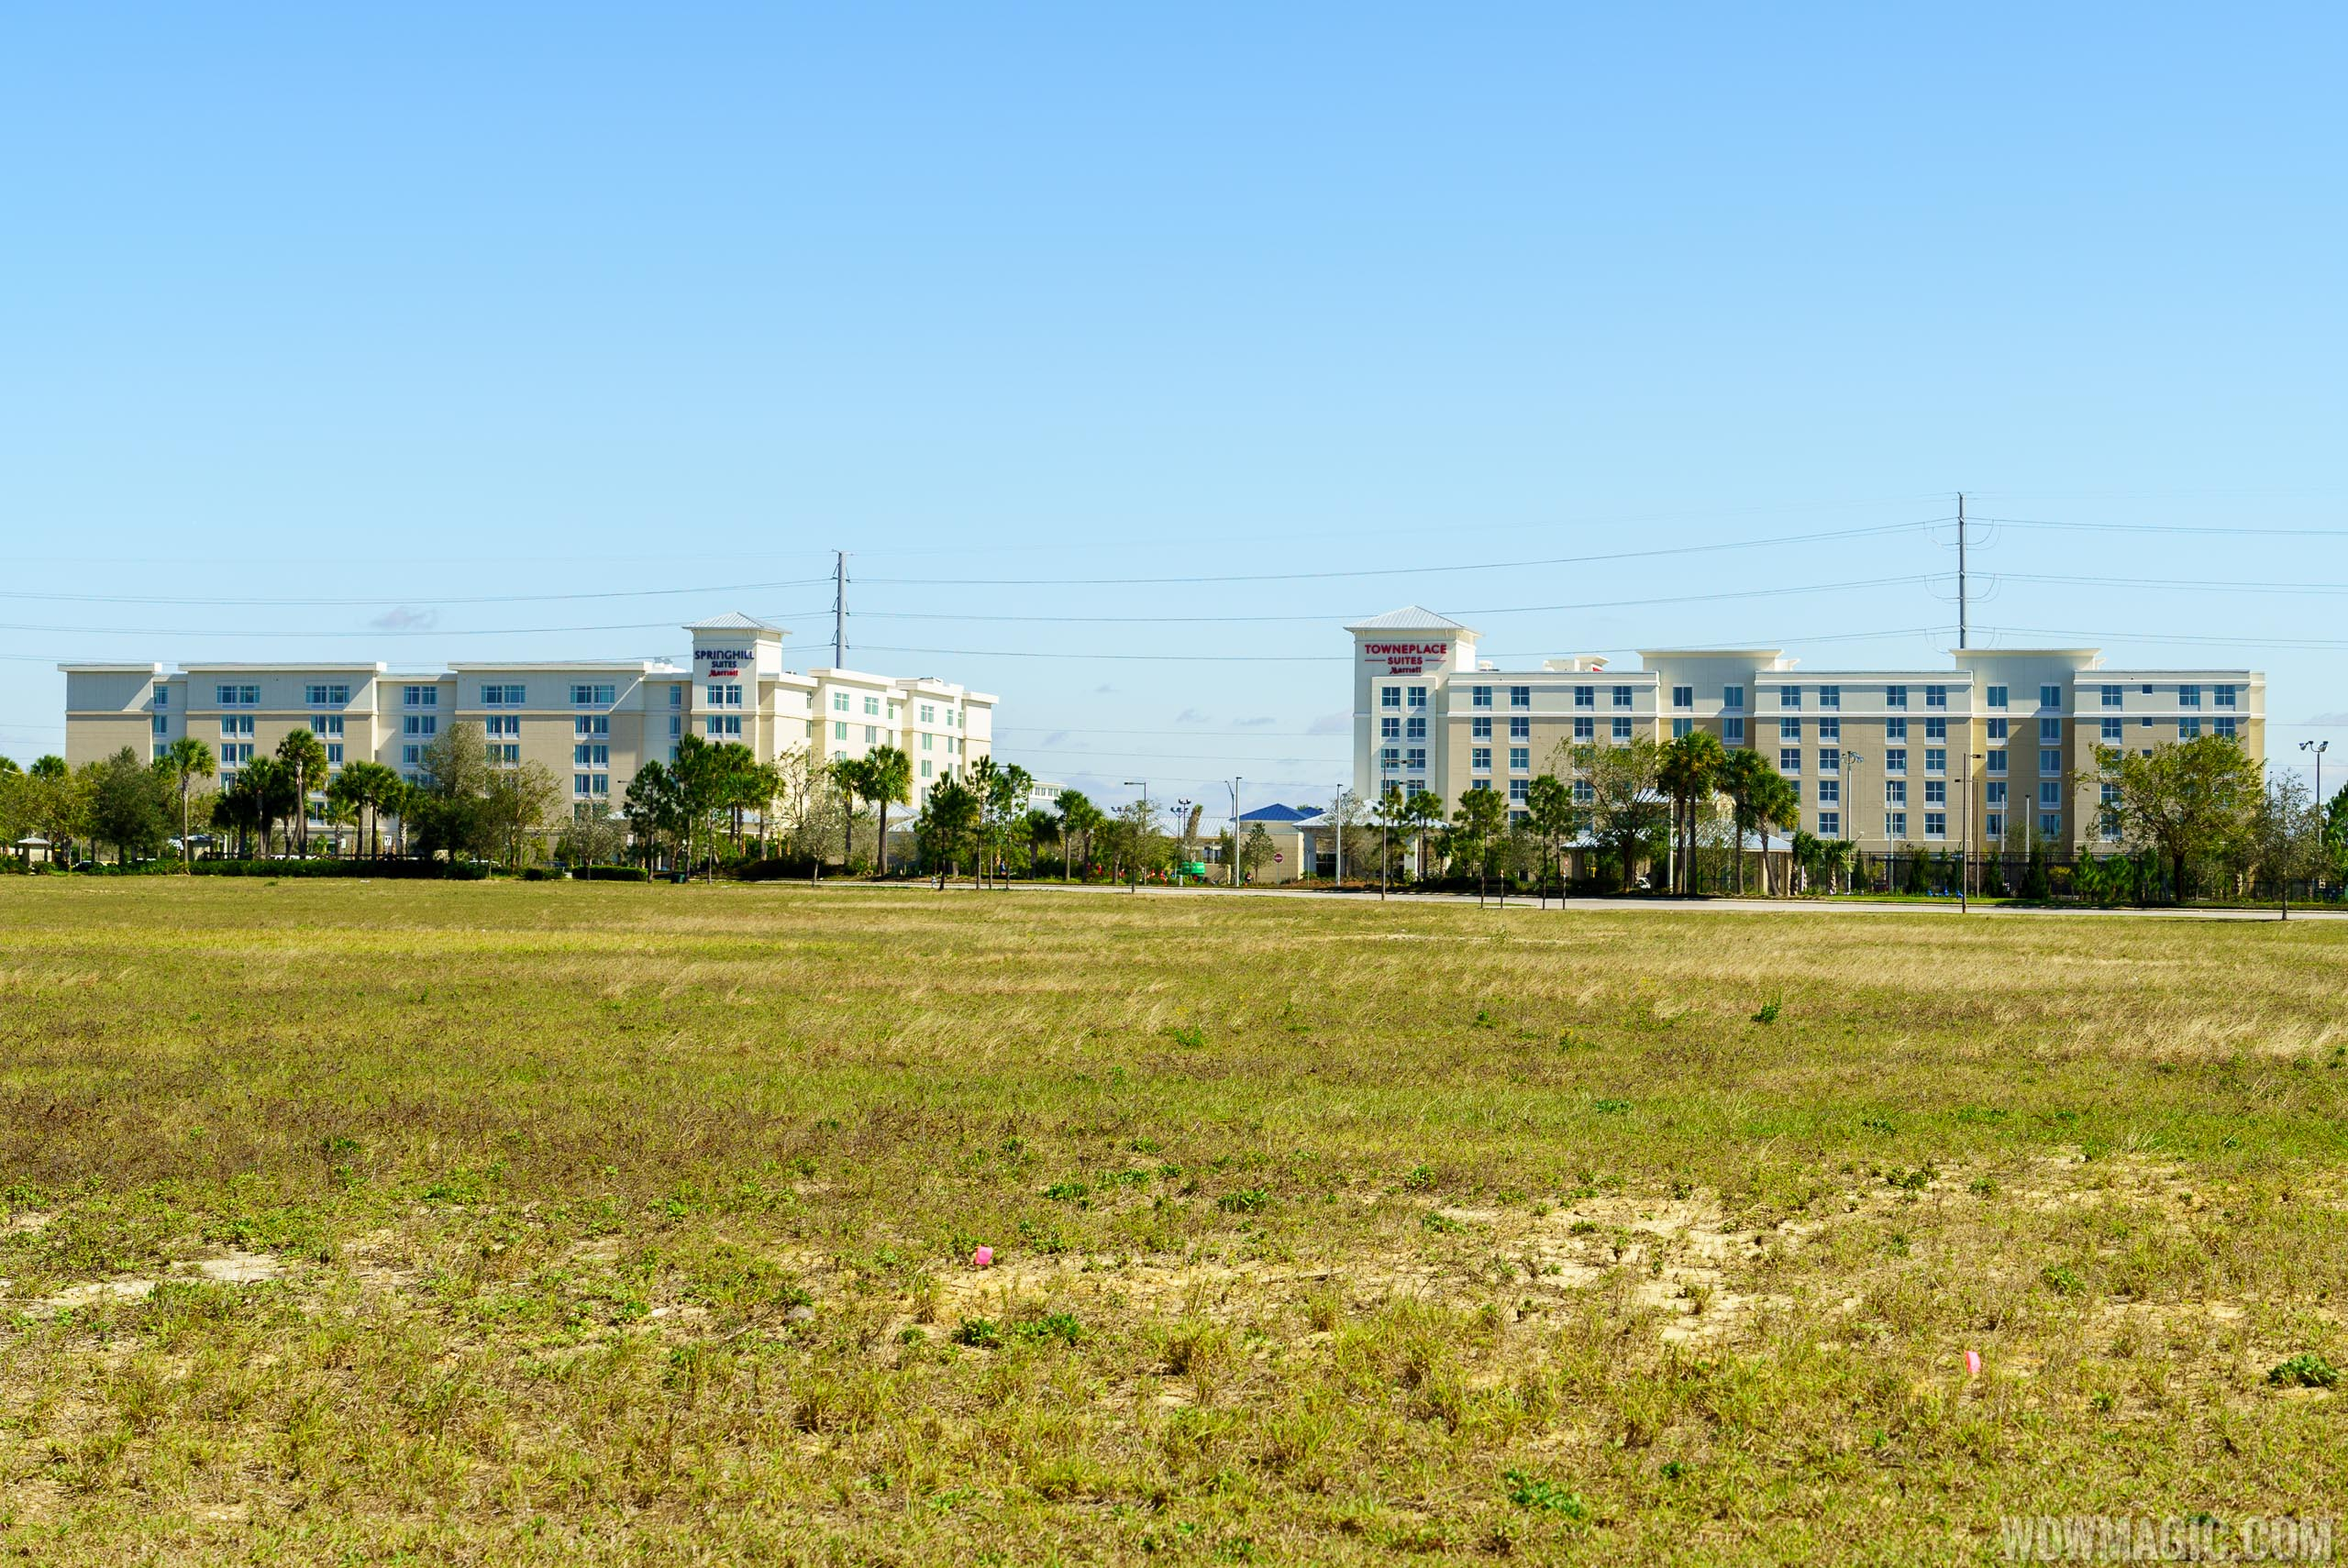 TownPlace Suites and SpringHill Suites at Flamingo Crossings